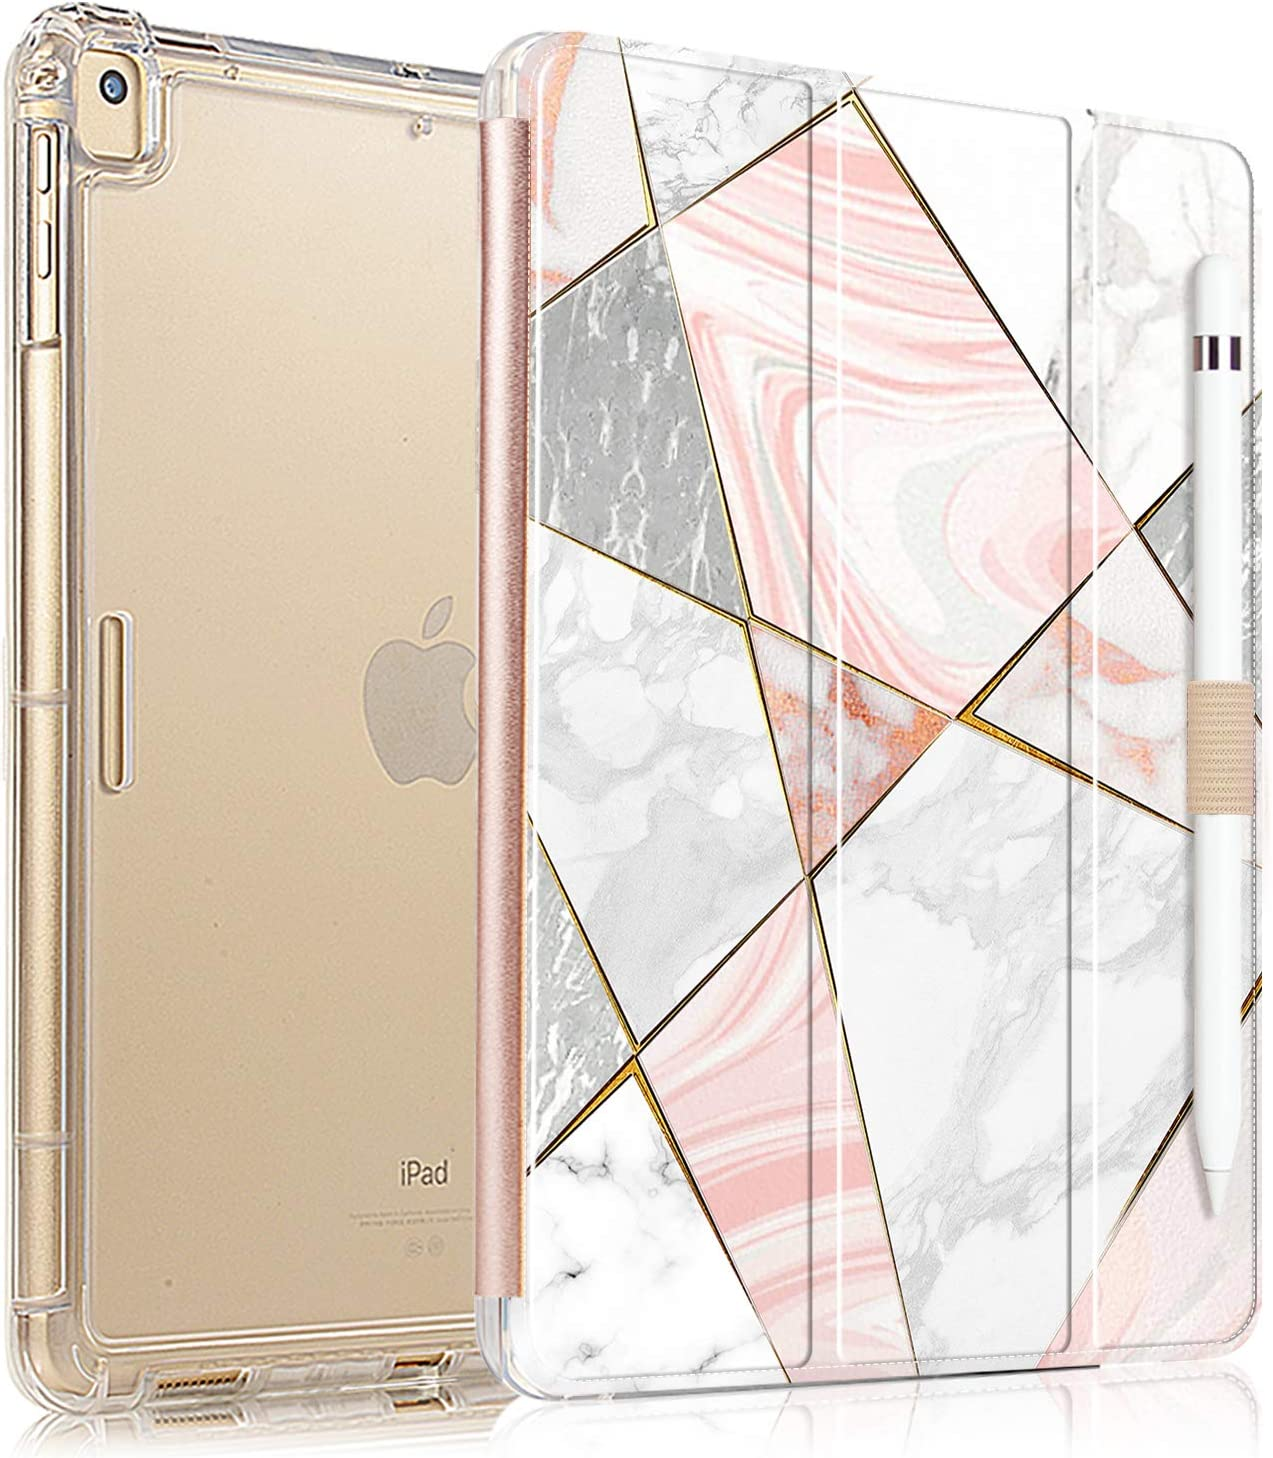 Valkit iPad Air 3rd Gen 10.5'' 2019 / iPad Pro 10.5'' 2017 Case, Smart Folio Stand Protective Translucent Frosted Back Cover for Apple iPad Air 3 10.5 Inch 2019 / iPad Pro 10.5